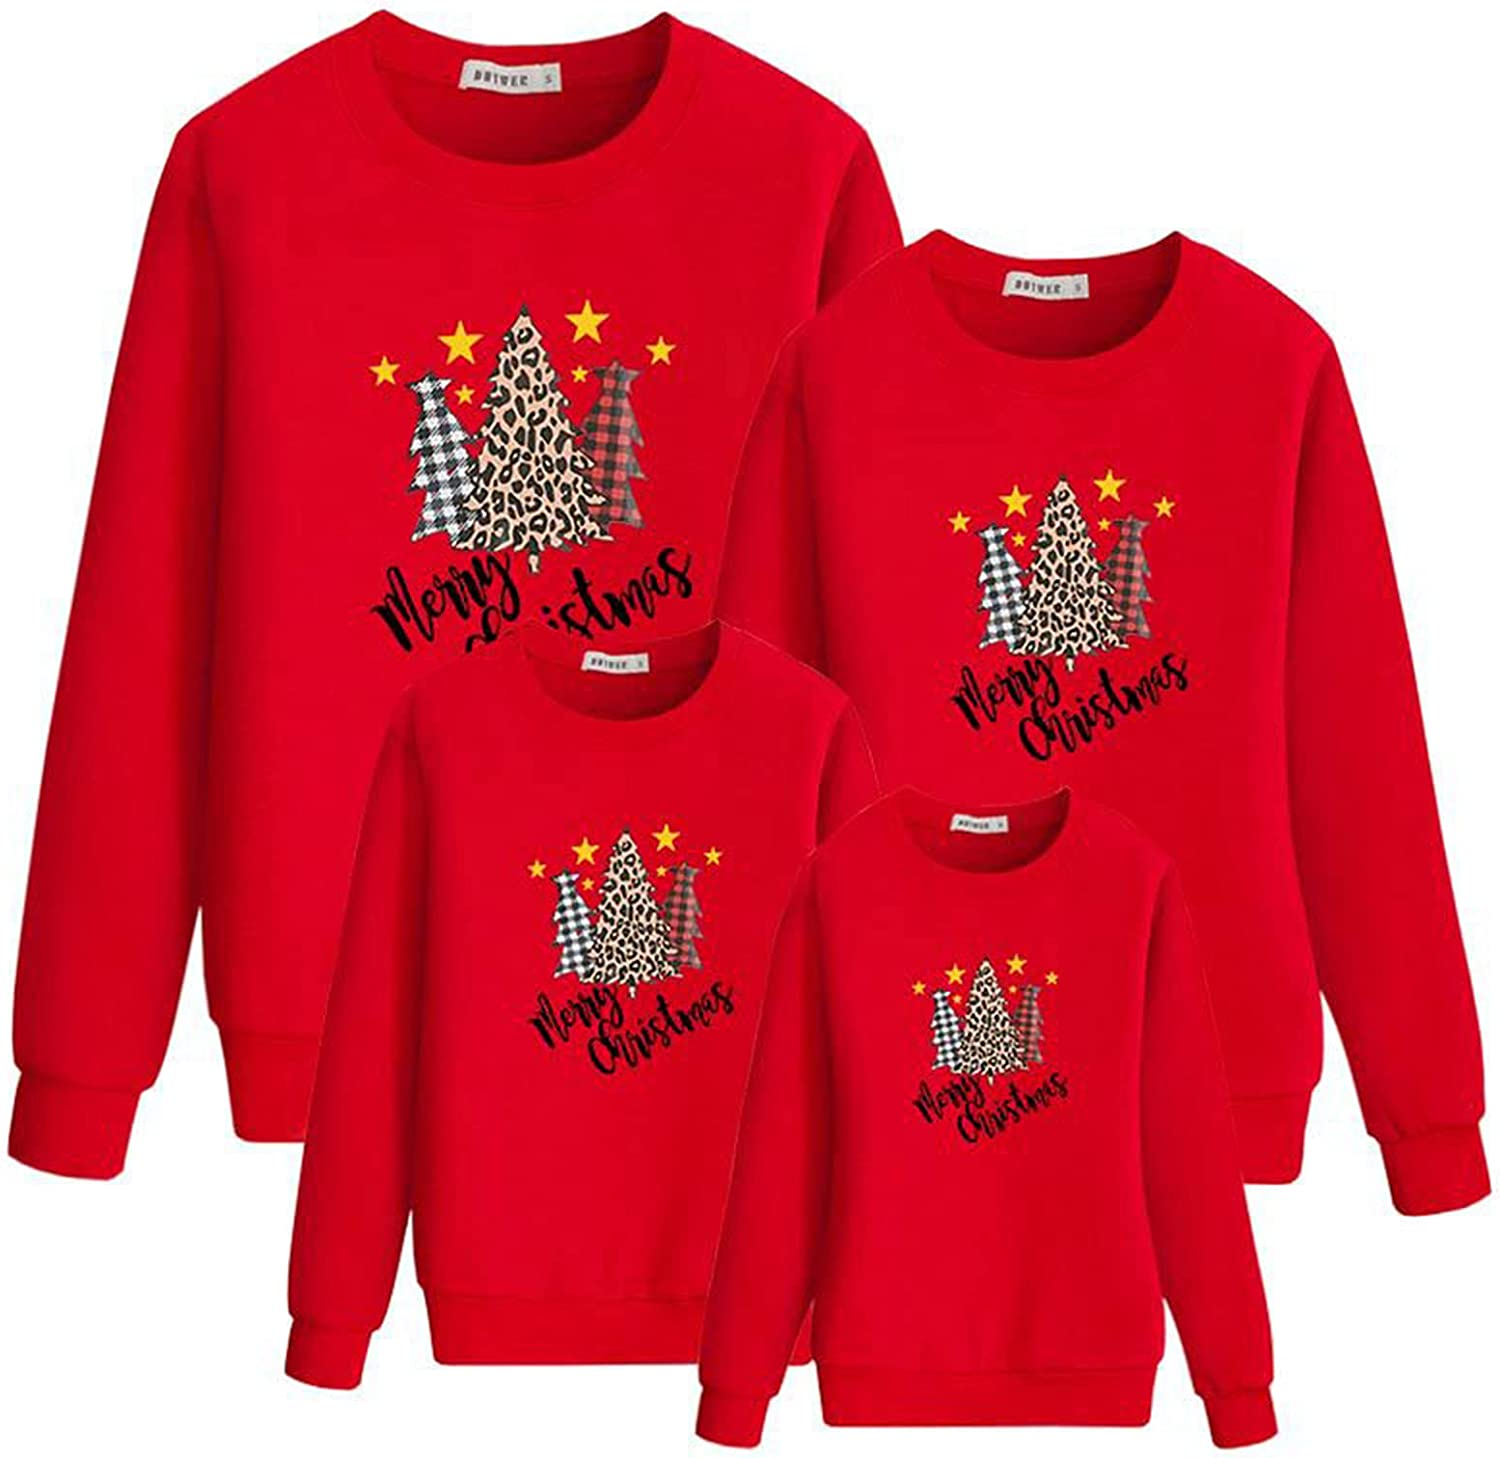 Christmas Surprise price Children's 2021 model Mom and Dad Supporting Long Sleeve Clothing